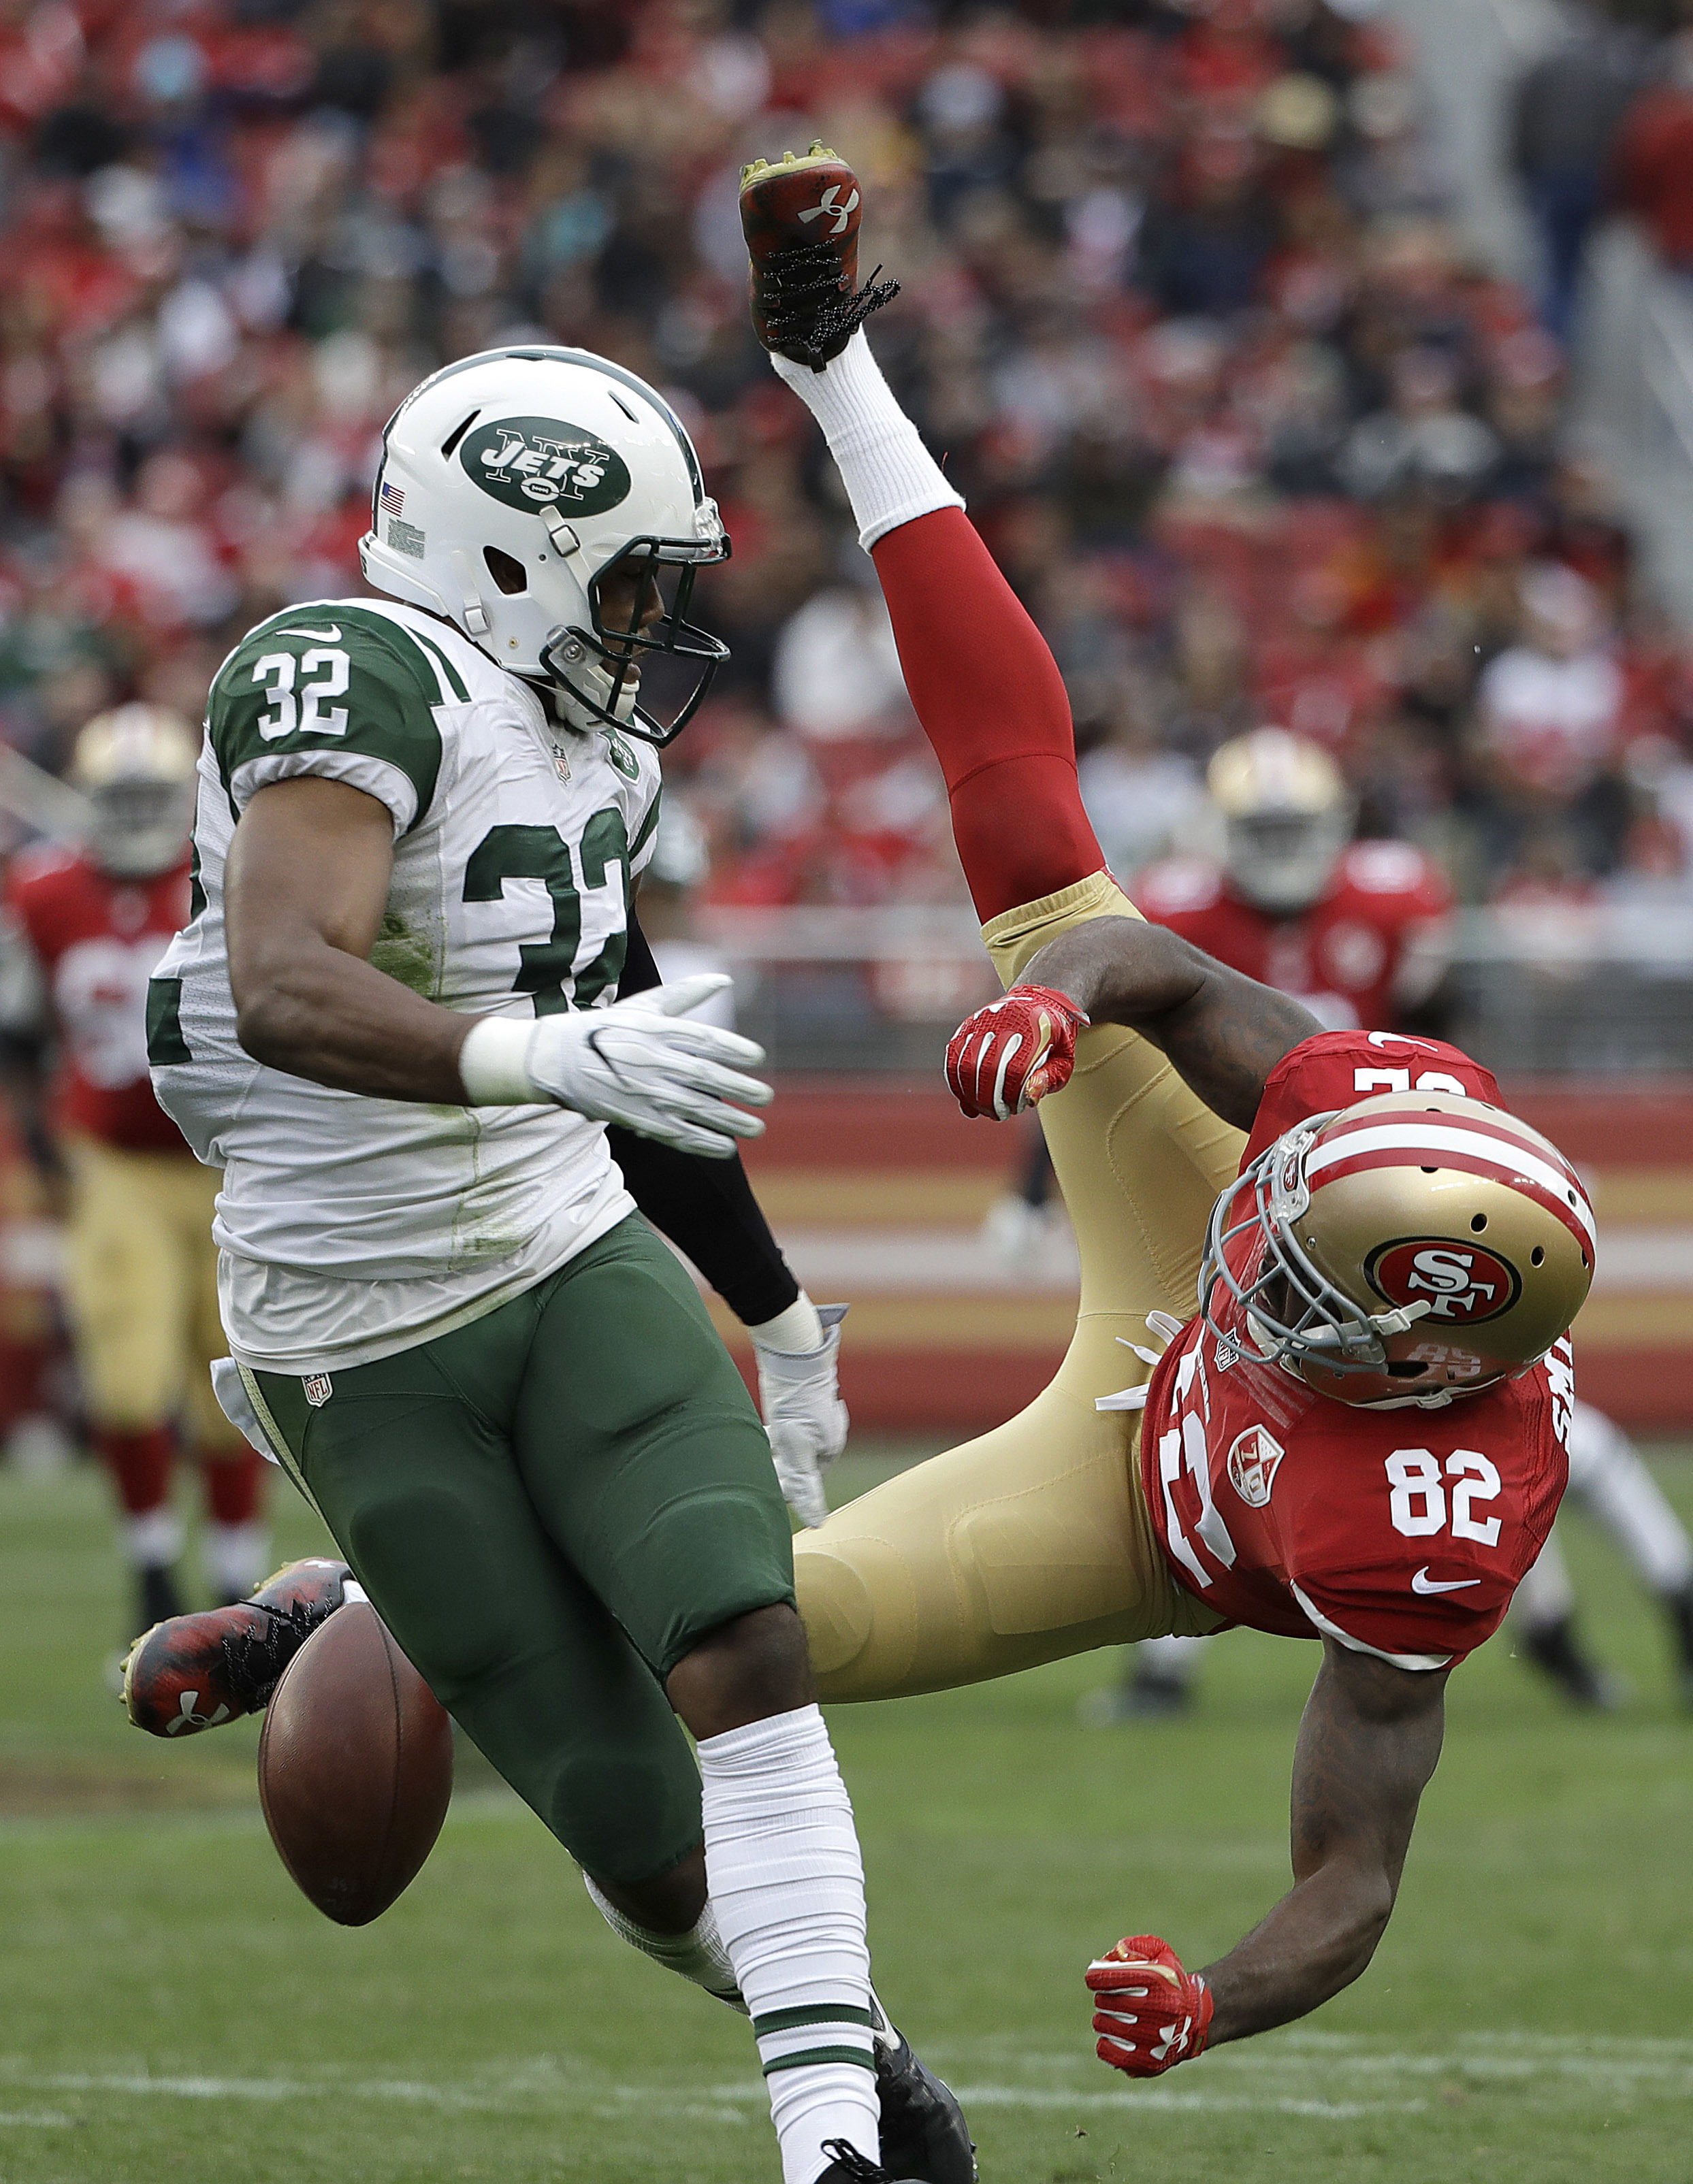 San Francisco 49ers wide receiver Torrey Smith (82) cannot catch a pass while defended by New York Jets cornerback Juston Burris (32) during the second half of an NFL football game in Santa Clara, Calif., Sunday, Dec. 11, 2016. (AP Photo/Marcio Jose Sanch